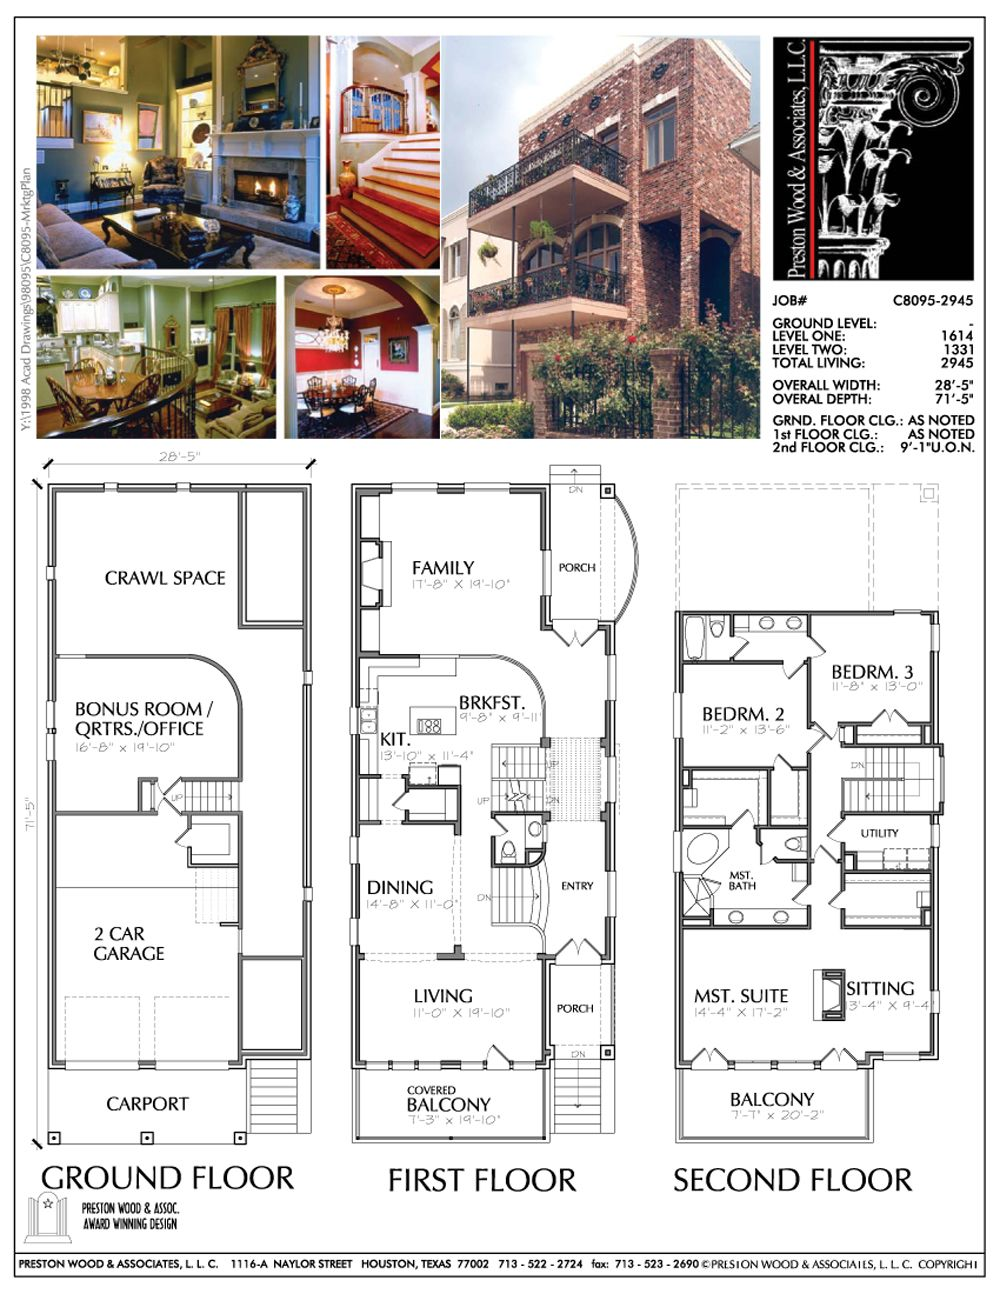 Interesting take on a split level floor plan. in 2019 ... on house with drive under garage, narrow lot house plans lake, mountain home plans with garage, narrow lot house plans modern, narrow lot house plans waterfront, narrow lot mediterranean house plans, earth sheltered homes with garage, narrow lot luxury house plans, vacation home plans with garage, narrow house plans with rear garage, narrow lot homes, cape cod home plans with garage, narrow lot old house plans, expensive modern car garage, narrow lot modular ranch plans, narrow city lot house plans, narrow lot house plans cottage, narrow lot urban house plans, narrow lot ranch house plans, narrow corner lot house floor plans,